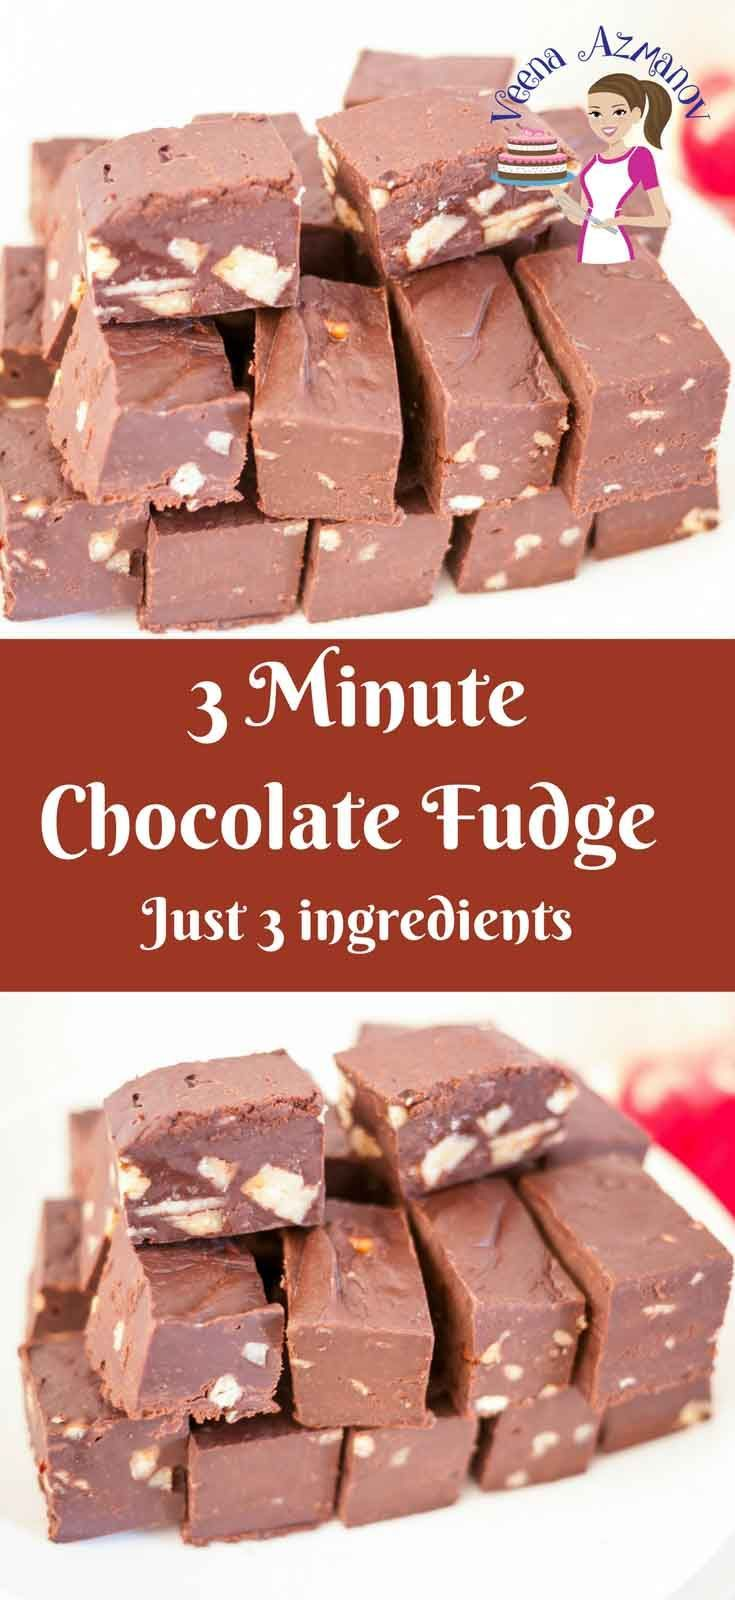 This 3 Minute Dark Chocolate Fudge Recipe Is A Great Treat To Have Any Time Of The Day A Chocolate Dessert Recipes Dark Chocolate Fudge Recipe Dessert Recipes